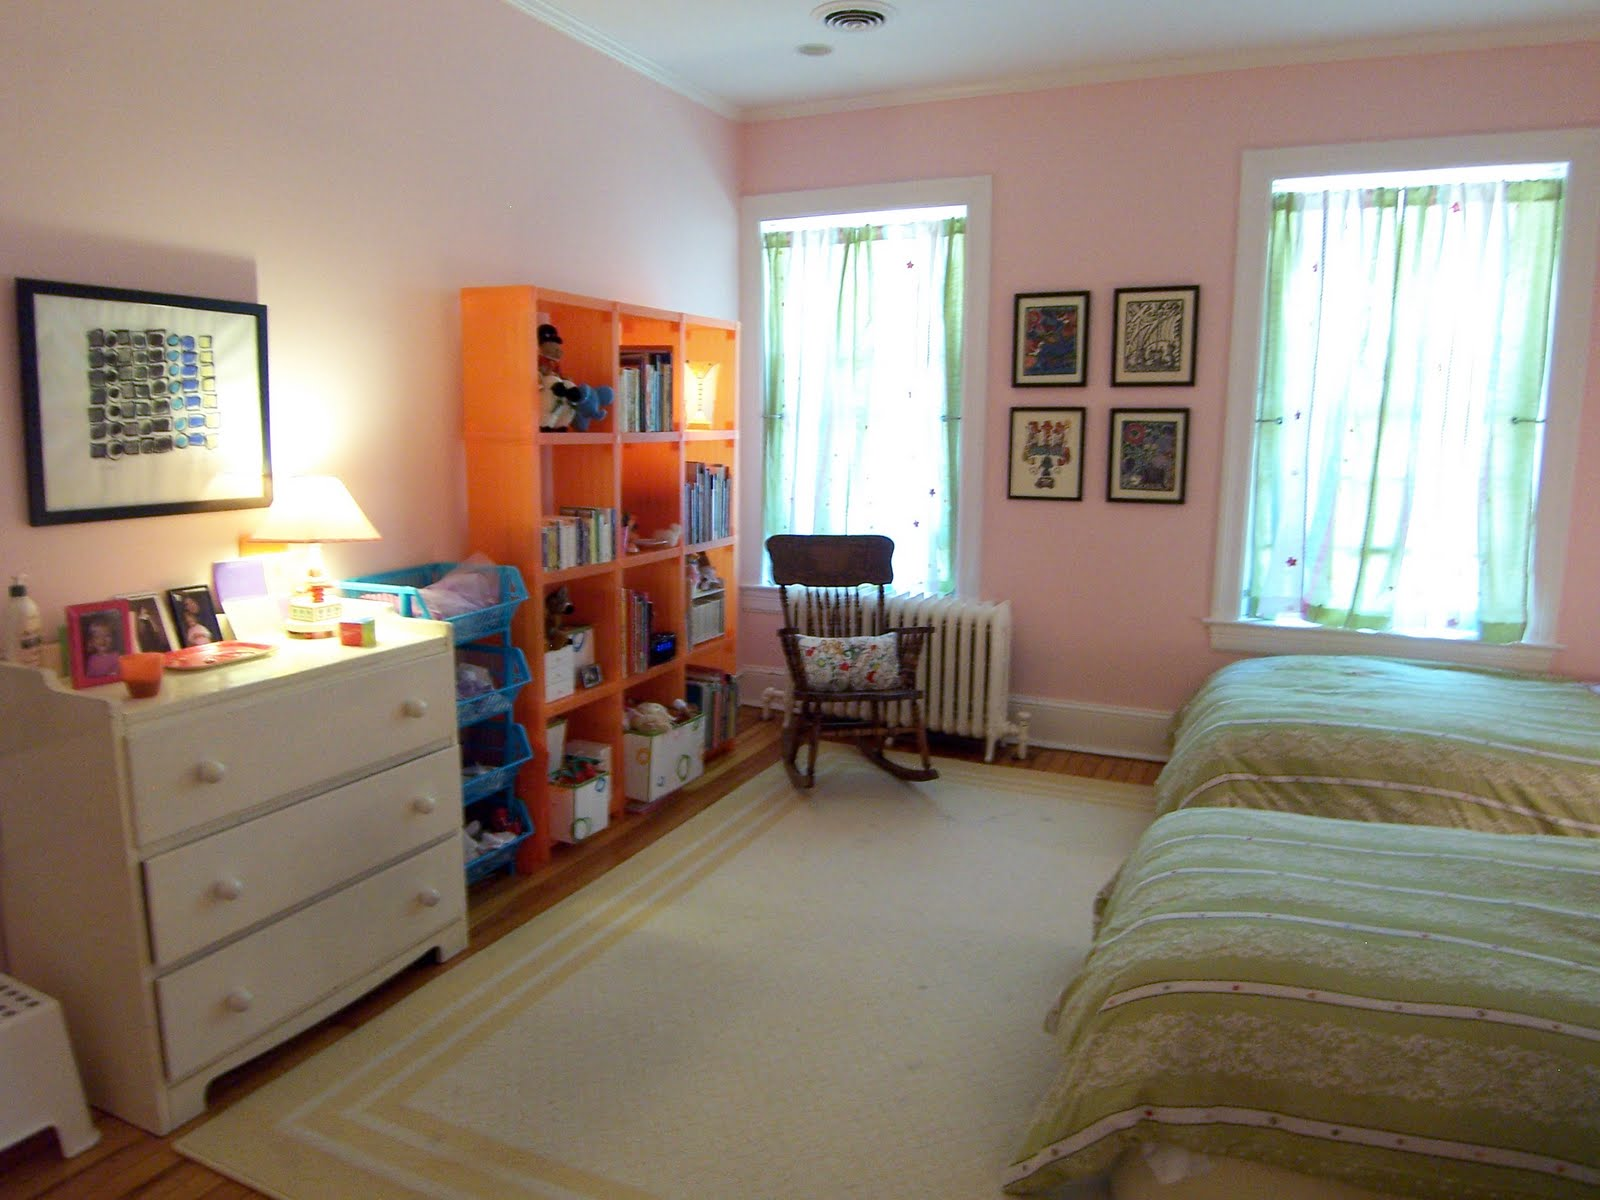 Child's Bedroom Makeover: The Challenges Of Small And